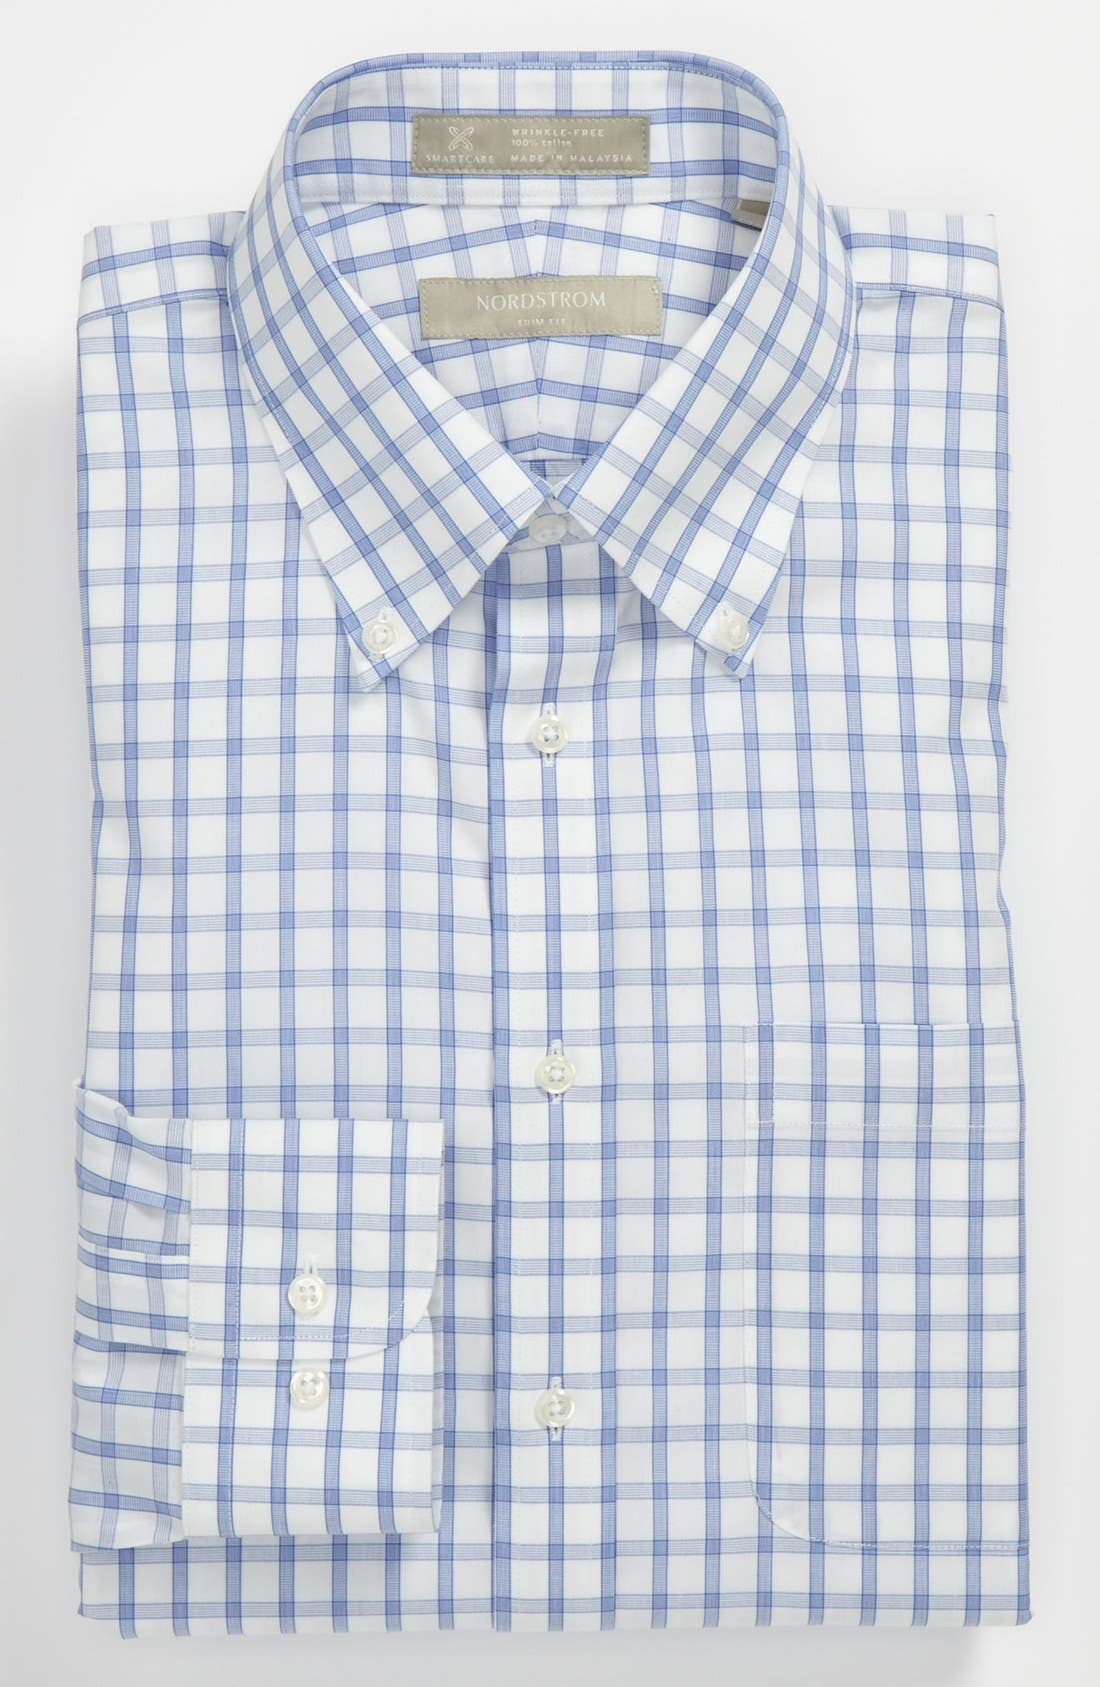 Alternate Image 1 Selected - Nordstrom Smartcare™ Wrinkle Free Trim Fit Check Dress Shirt